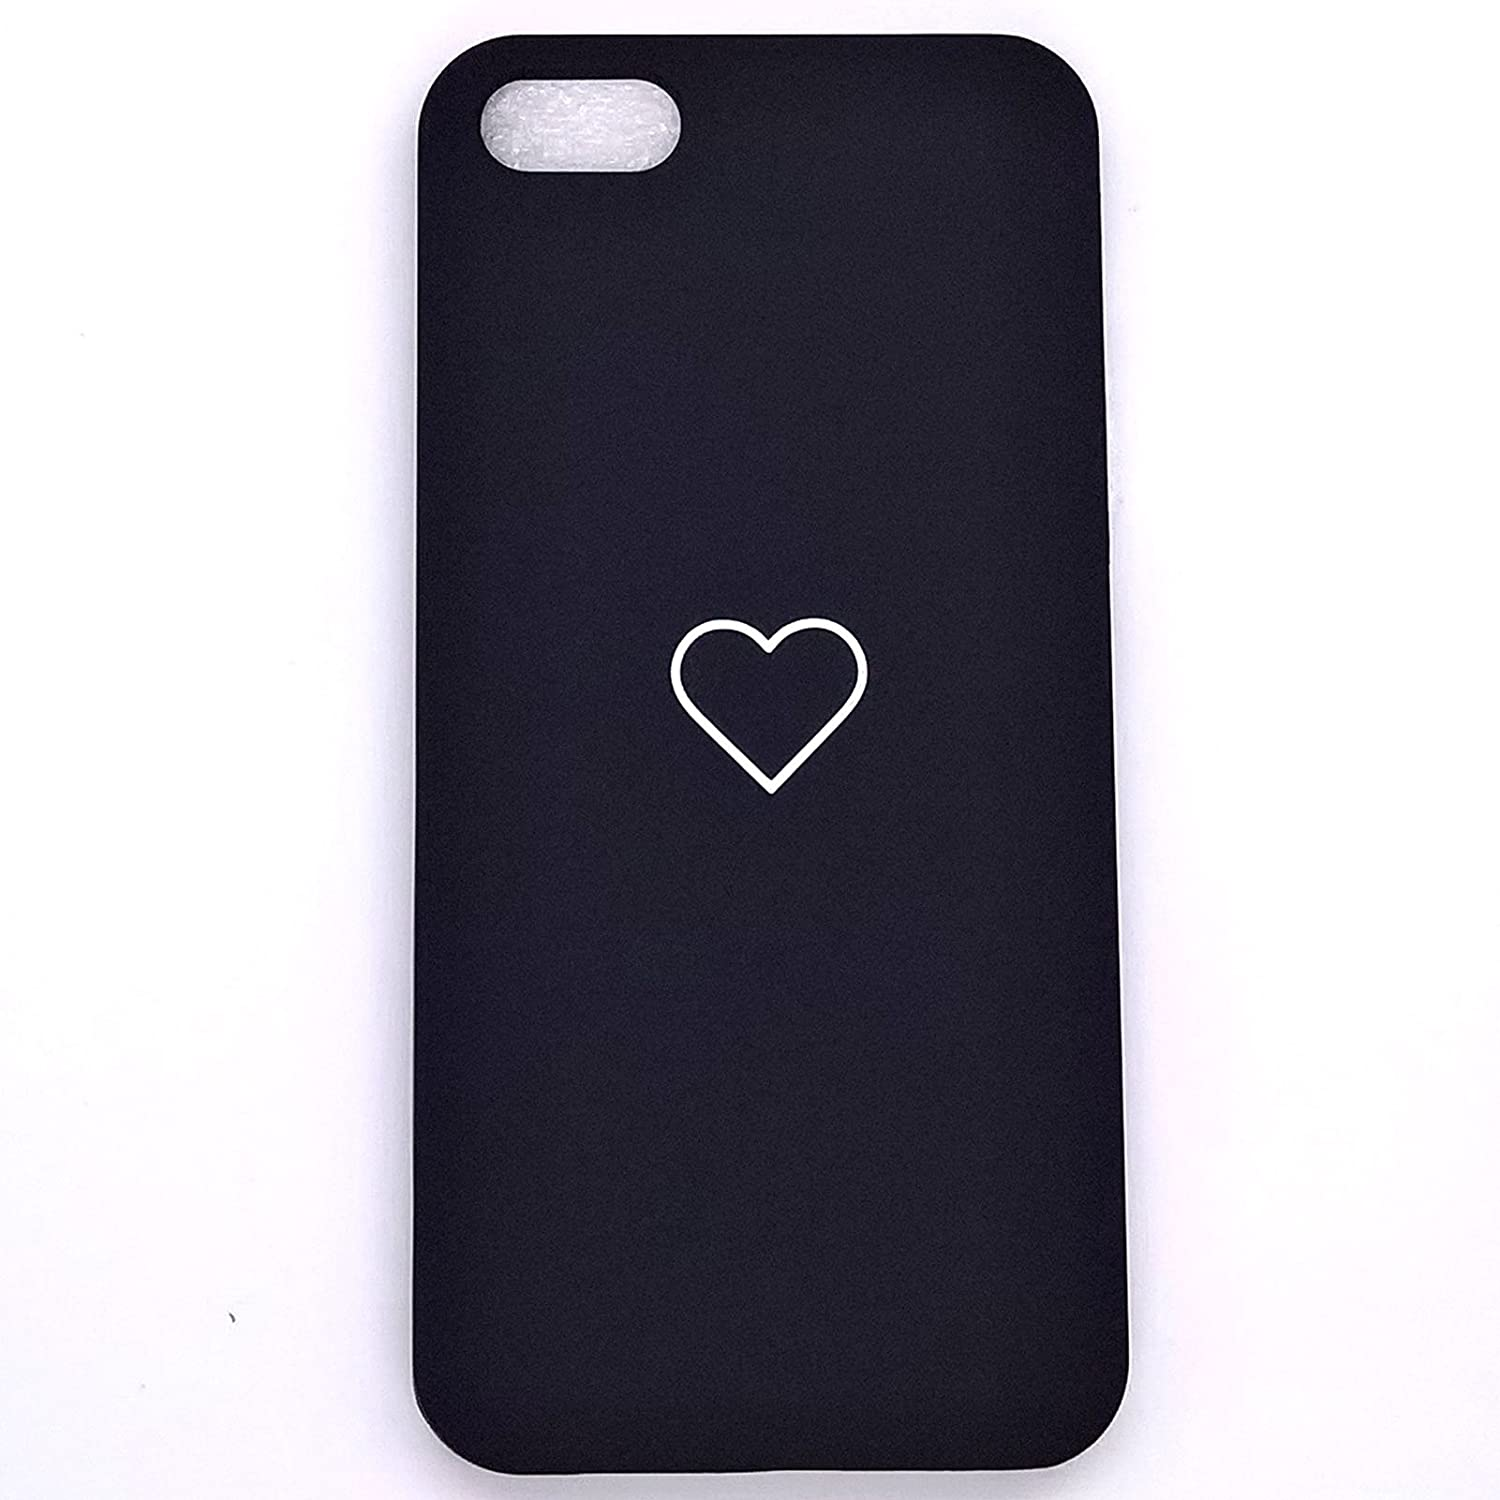 """Apple iPhone 6s Case, iPhone 6 Case Luxury Cute Heart Shockproof Slim PC Phone Case Cover Skin for iPhone 6s iPhone 6 (Black, iPhone 6s 6 4.7"""")"""